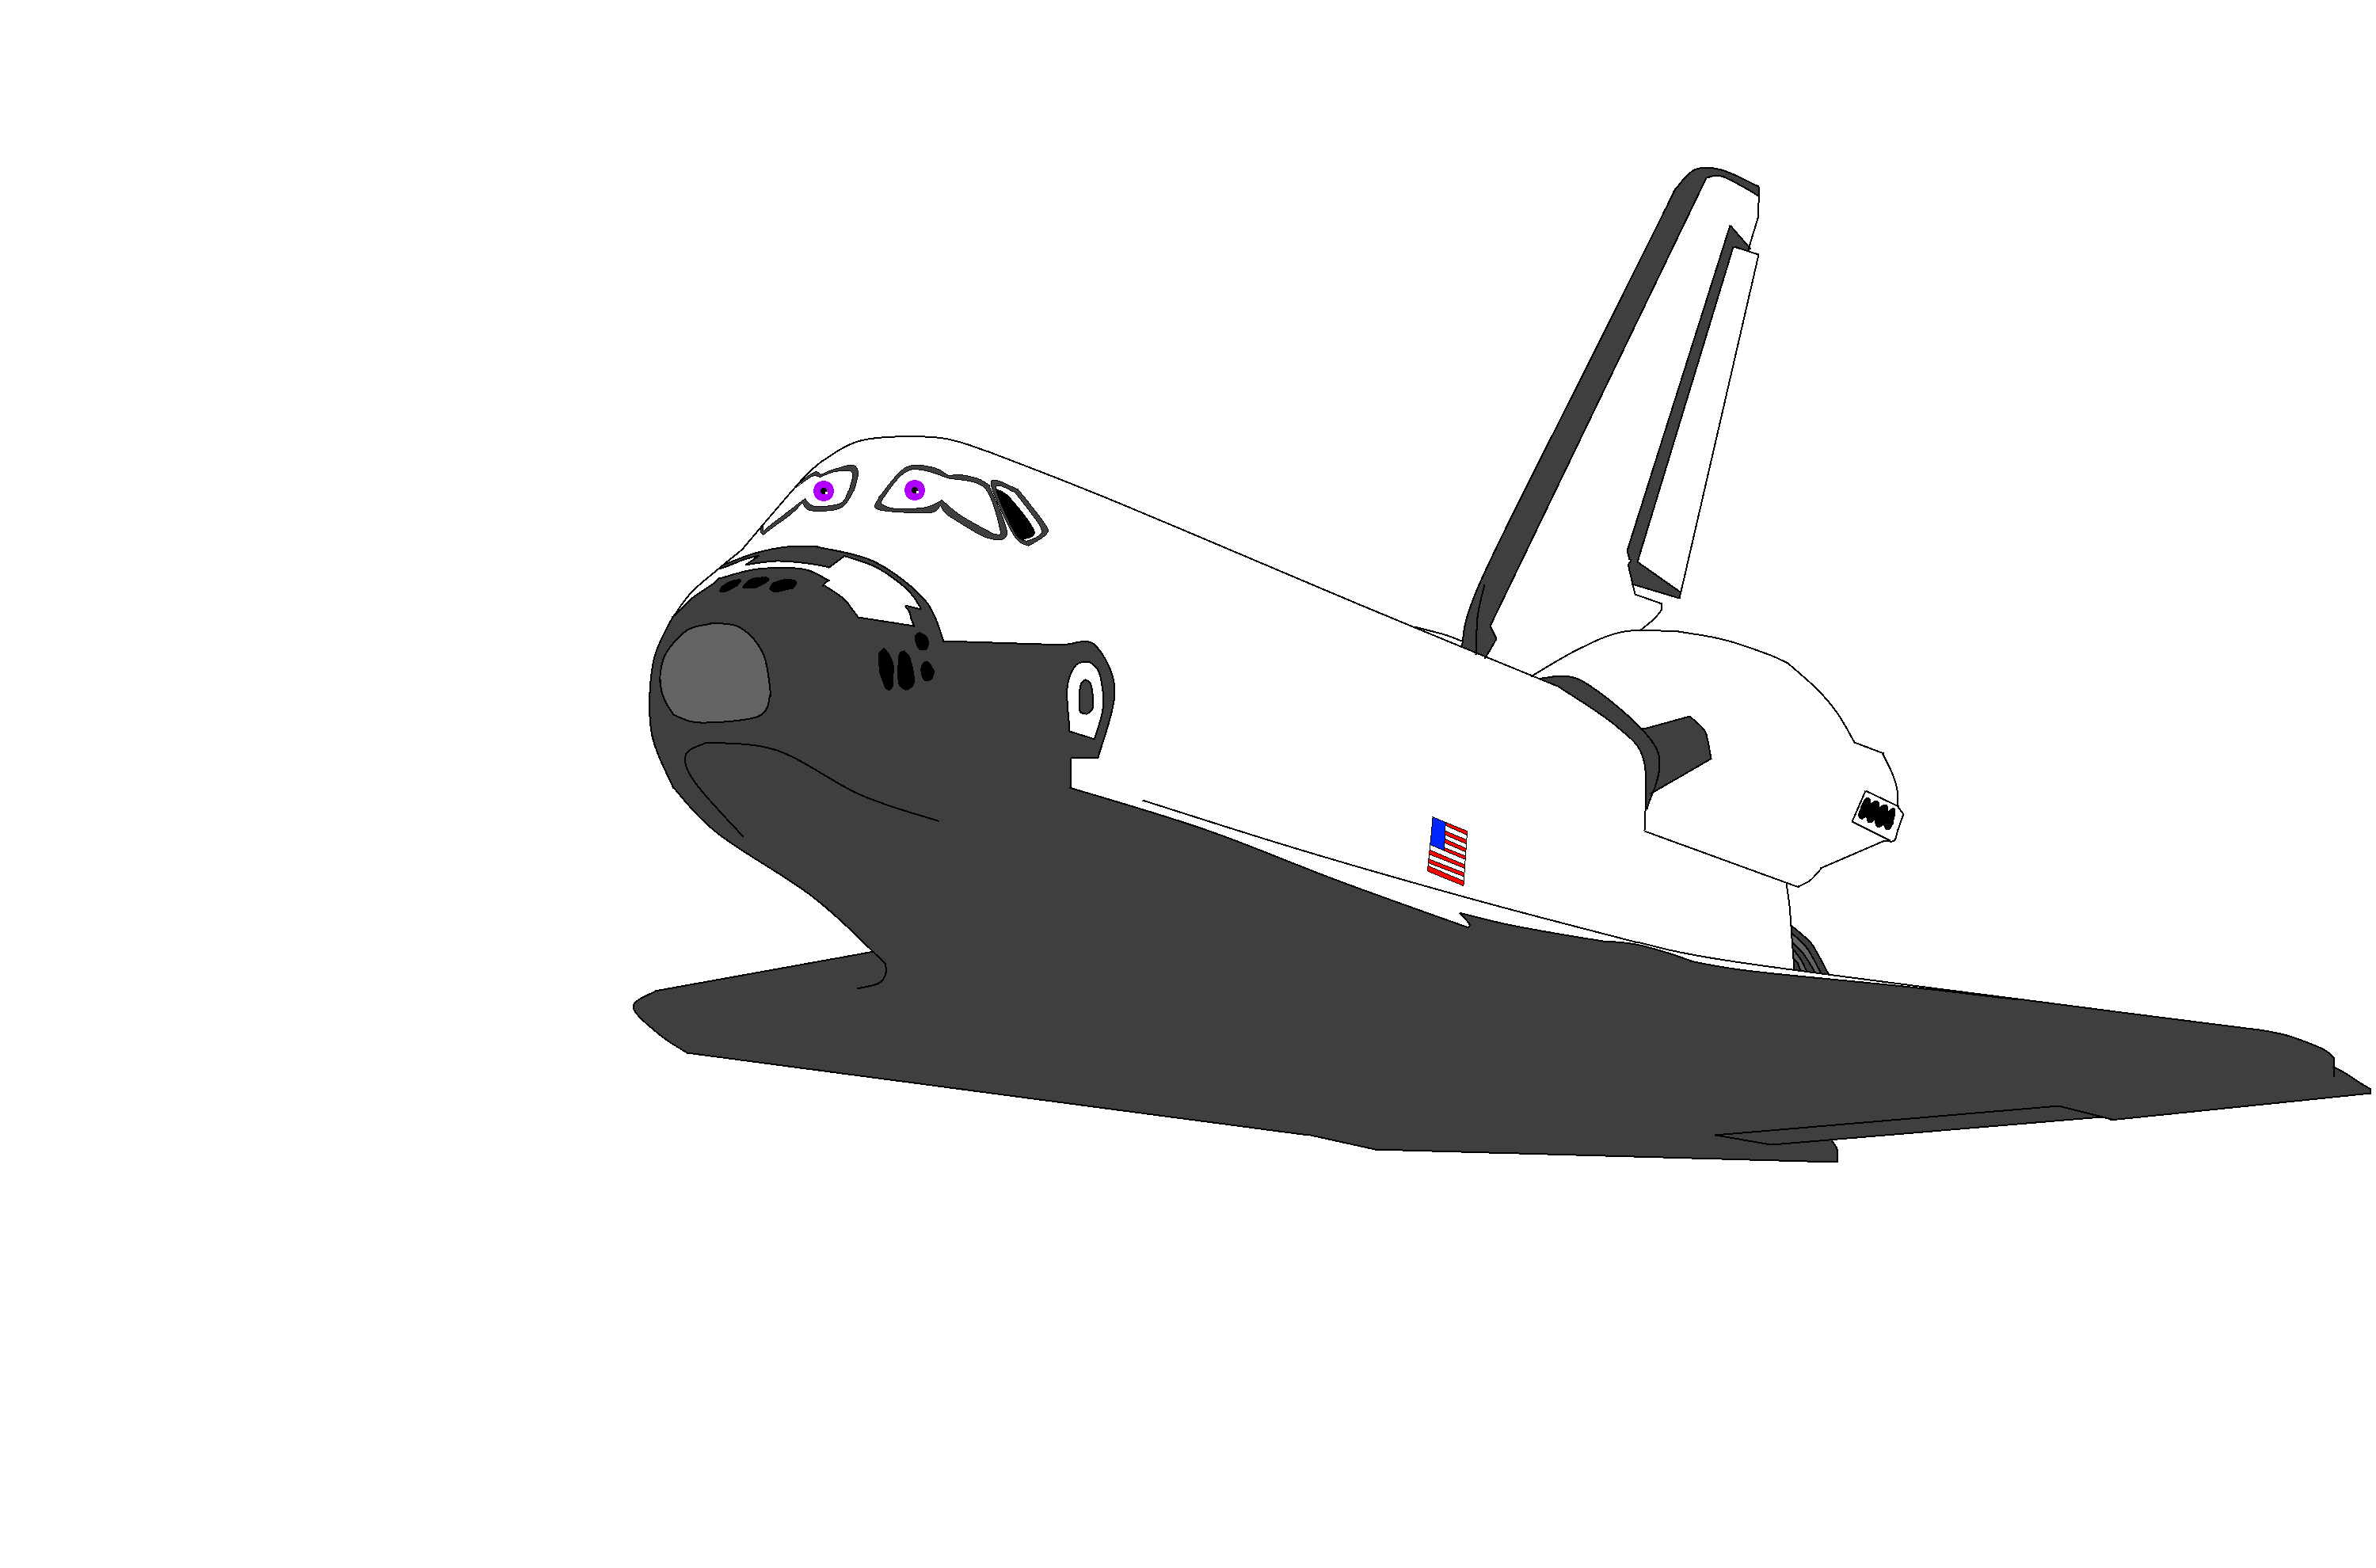 Space Shuttle Indiana by ColinTheP6M on deviantART